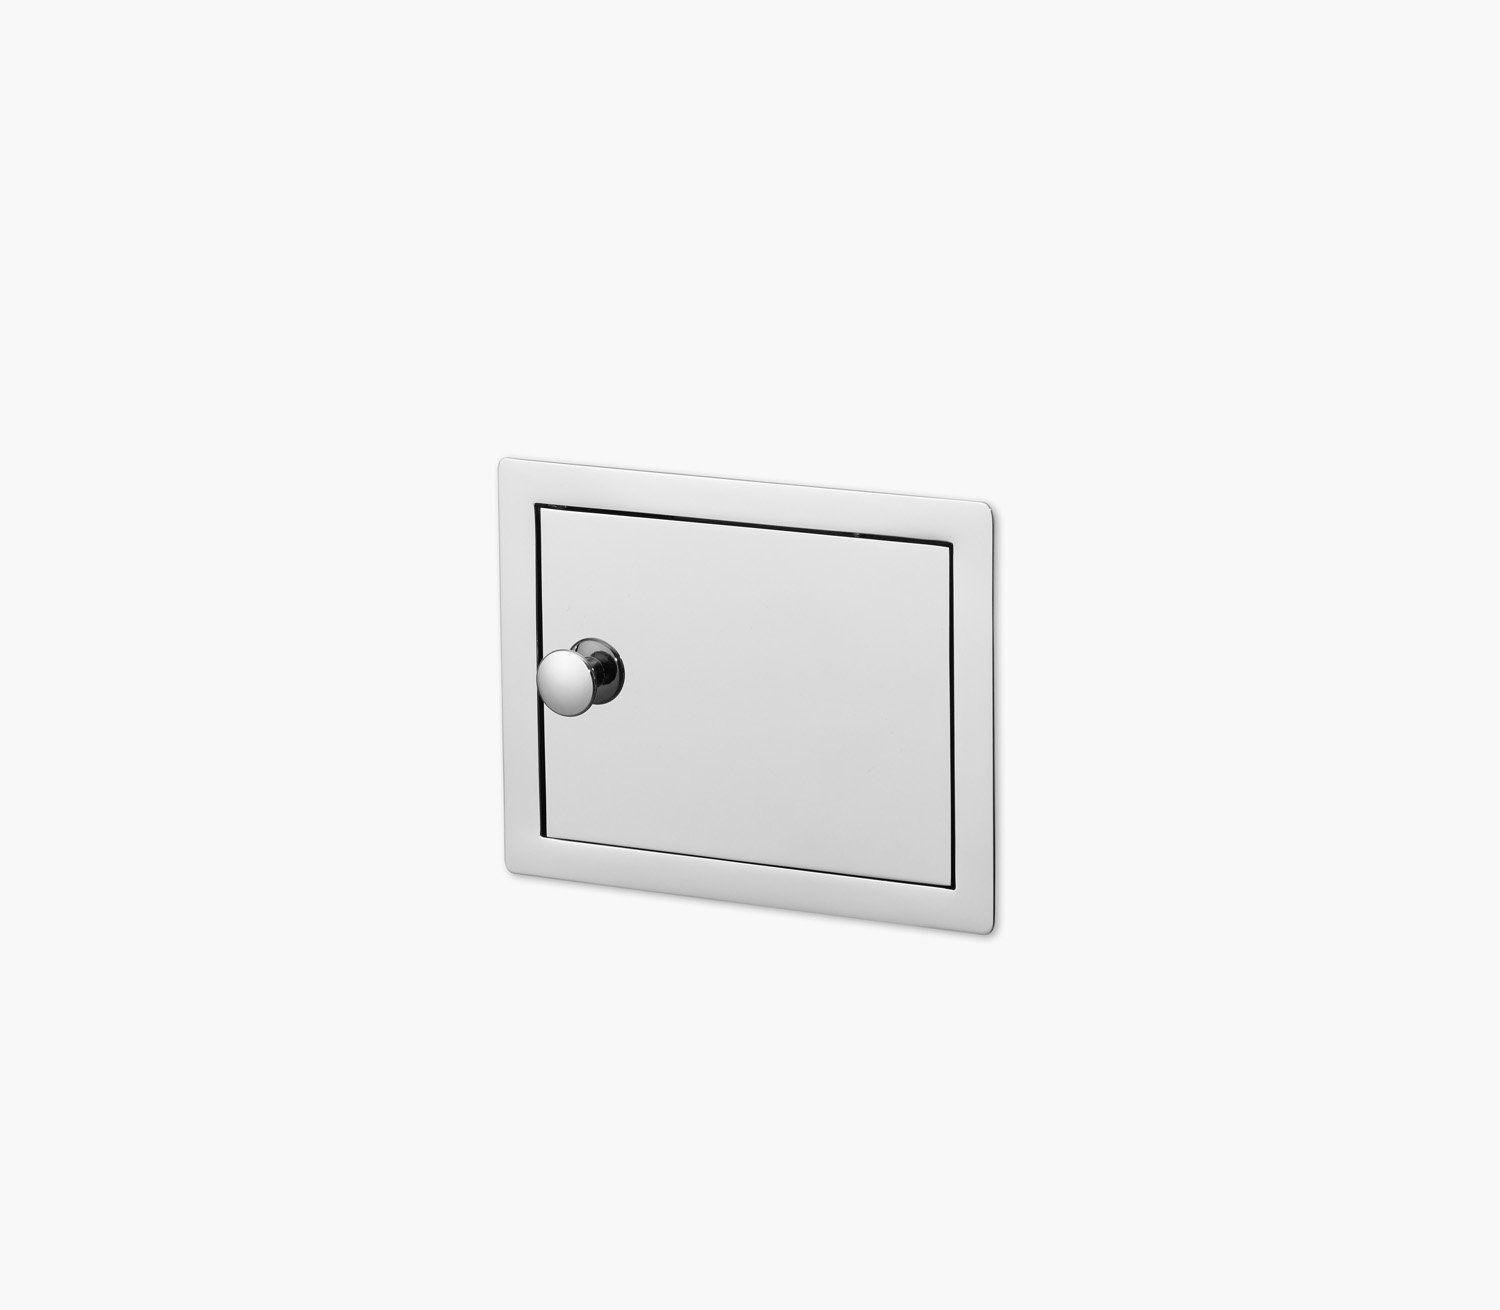 Wall Recessed Toilet Paper Holder II Product Image 1